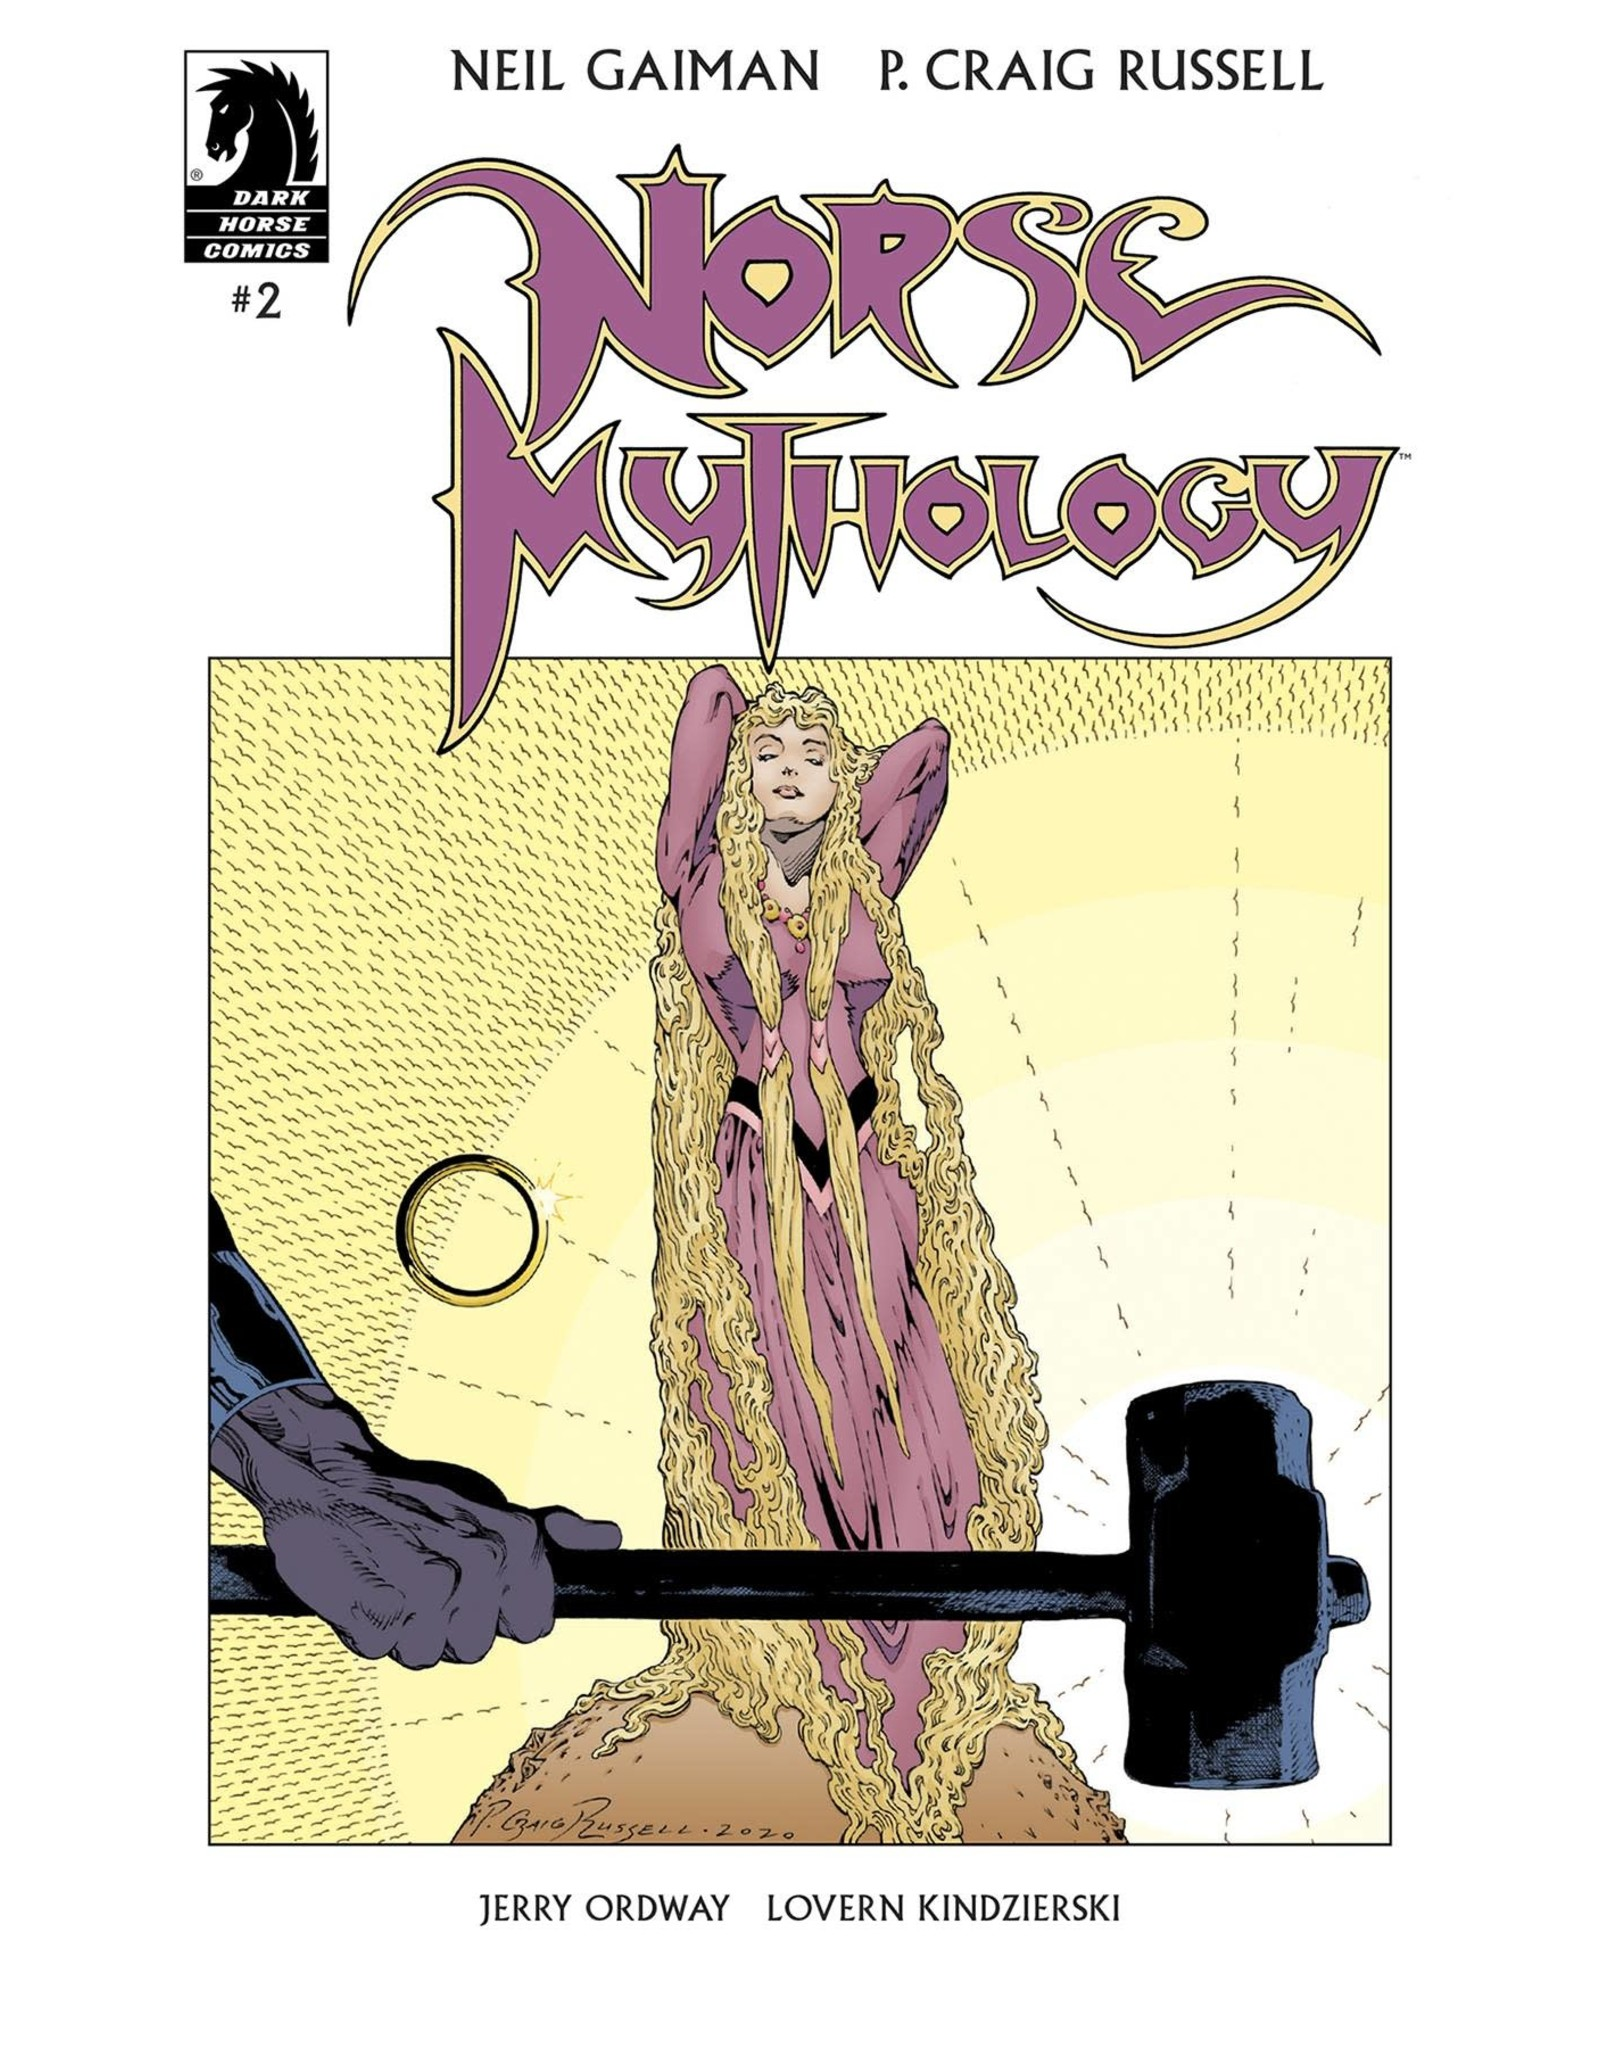 DARK HORSE COMCIS NEIL GAIMAN NORSE MYTHOLOGY #2 CVR A RUSSELL (C: 1-0-0)